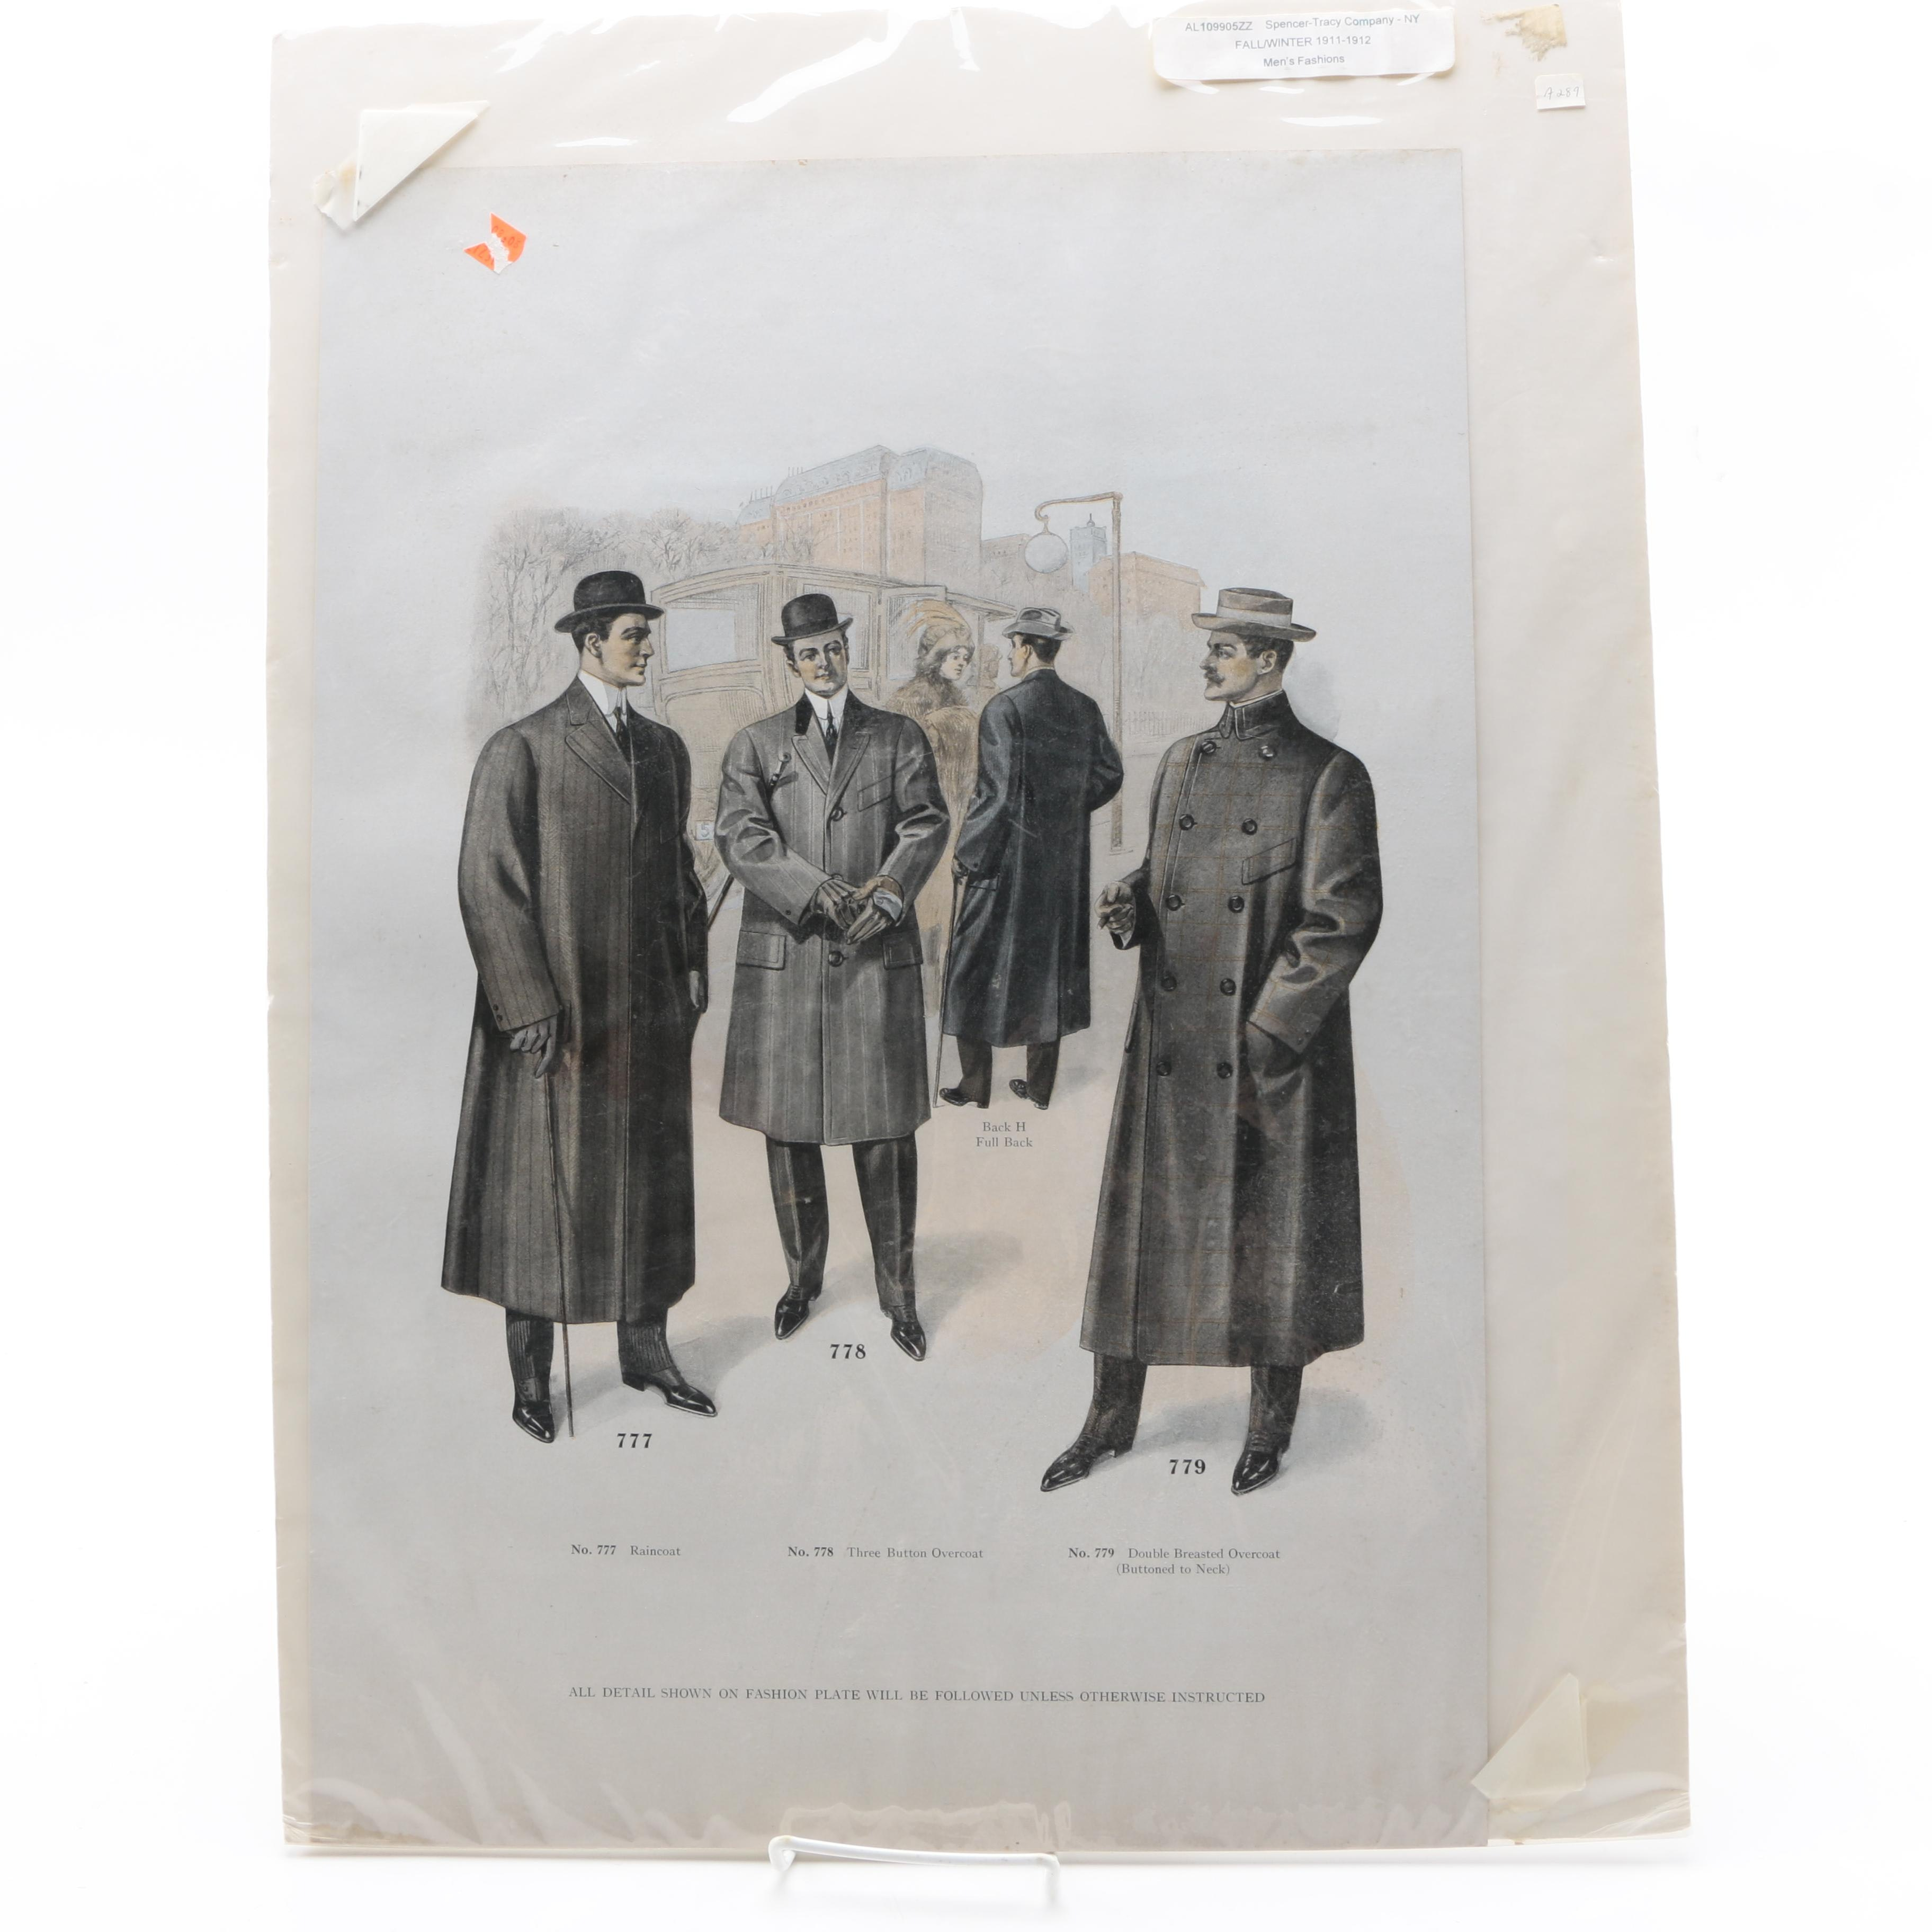 Halftone Print of Spencer-Tracy Company Fall/Winter 1911-1912 Men's Fashion Plate